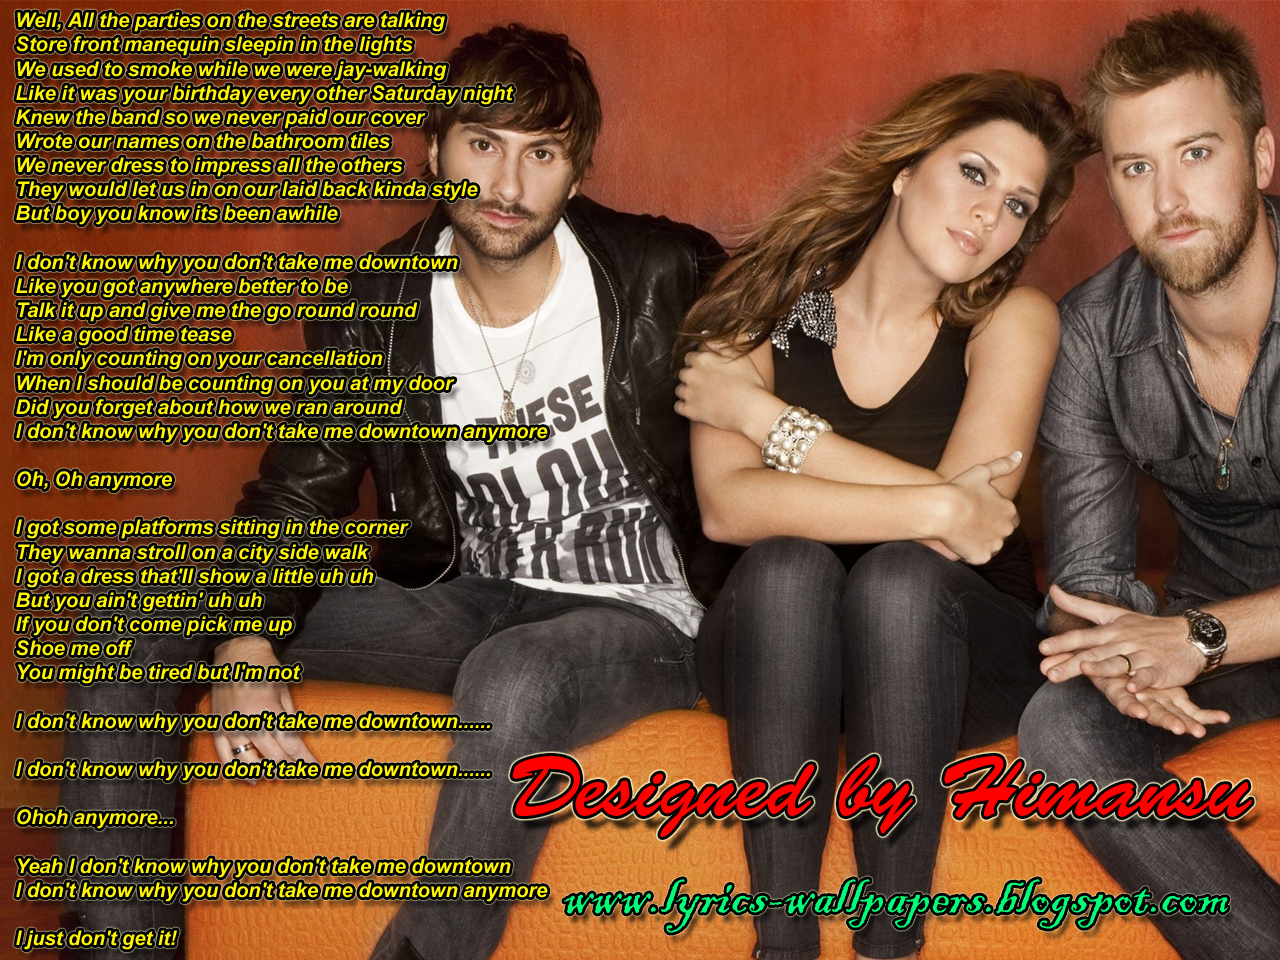 http://2.bp.blogspot.com/-Xsd0PSoAeUE/UZfS89nFlNI/AAAAAAAABPw/1XFU3Xt-81A/s1600/Lyrics+Wallpapers+-+Lady+Antebellum+-+Downtown.jpg